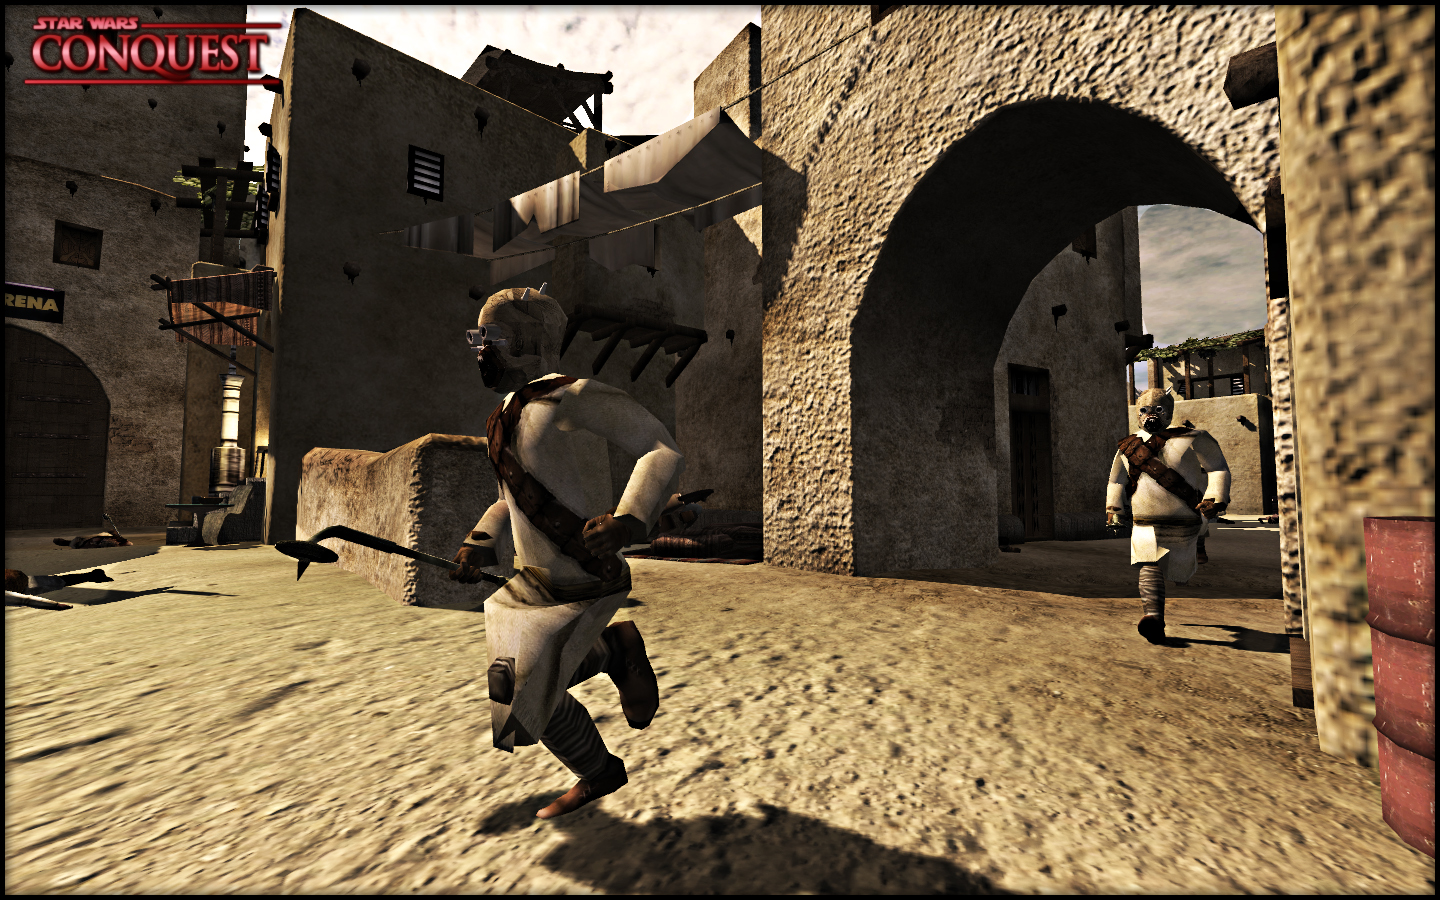 how to download star wars conquest for mount and blade warband